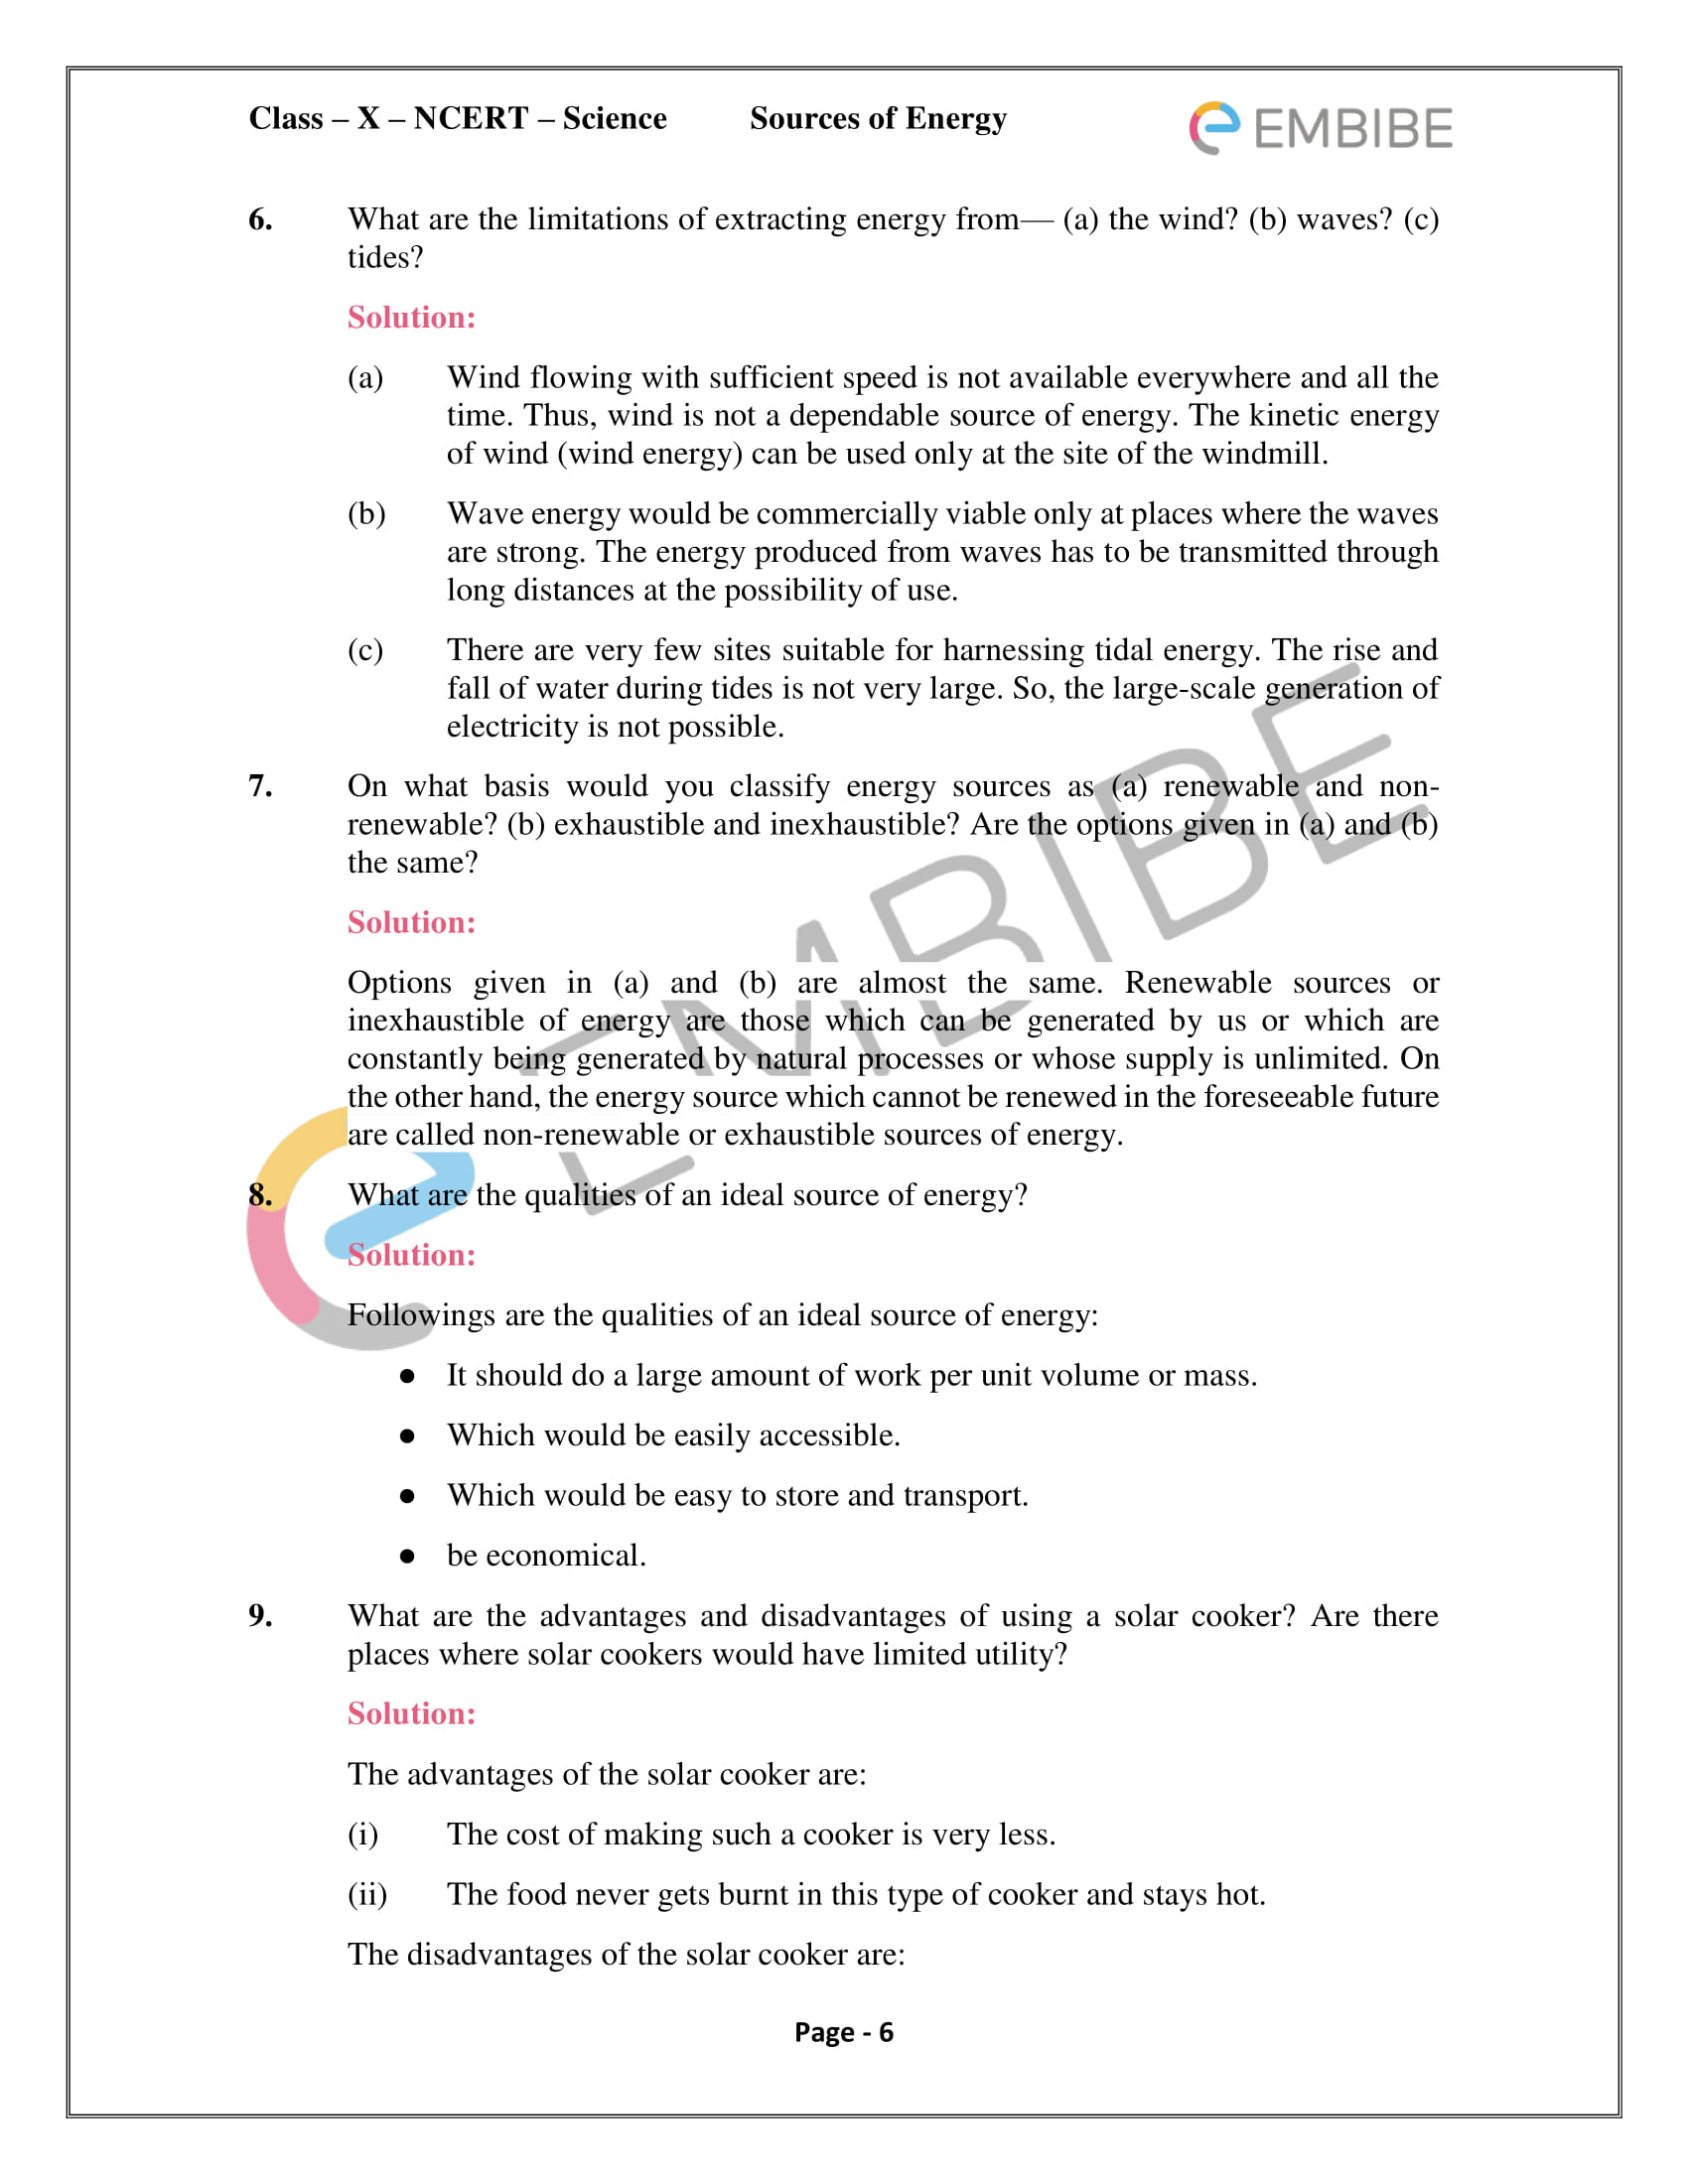 CBSE NCERT Solutions For Class 10 Science Chapter 14 - Sources of Energy